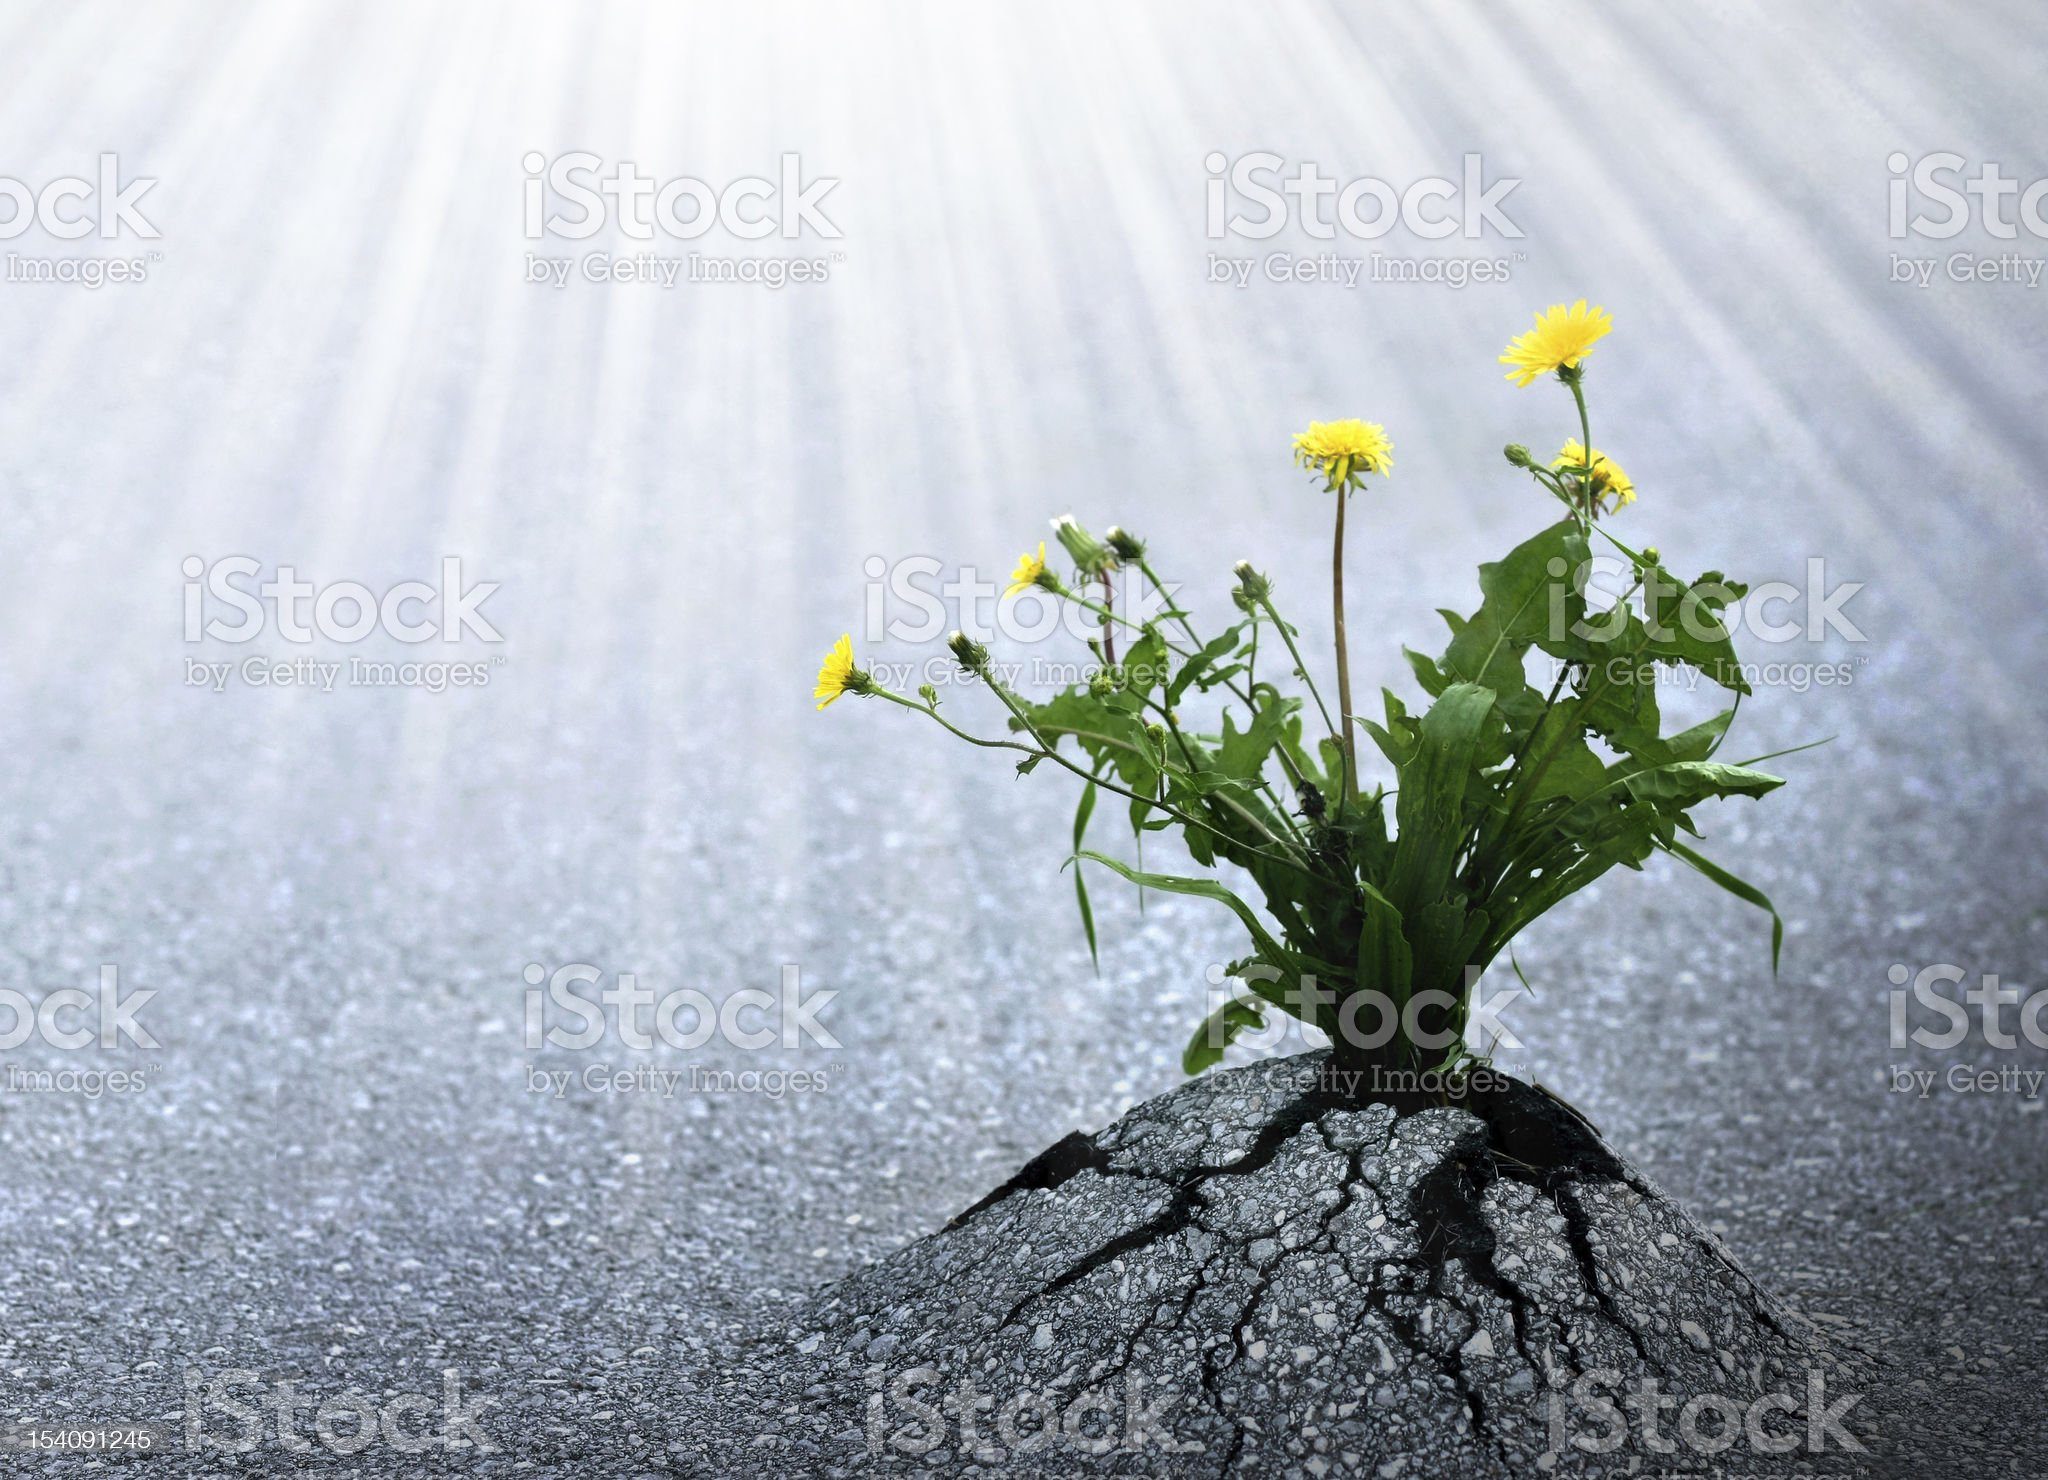 Bright Hope of Life royalty-free stock photo